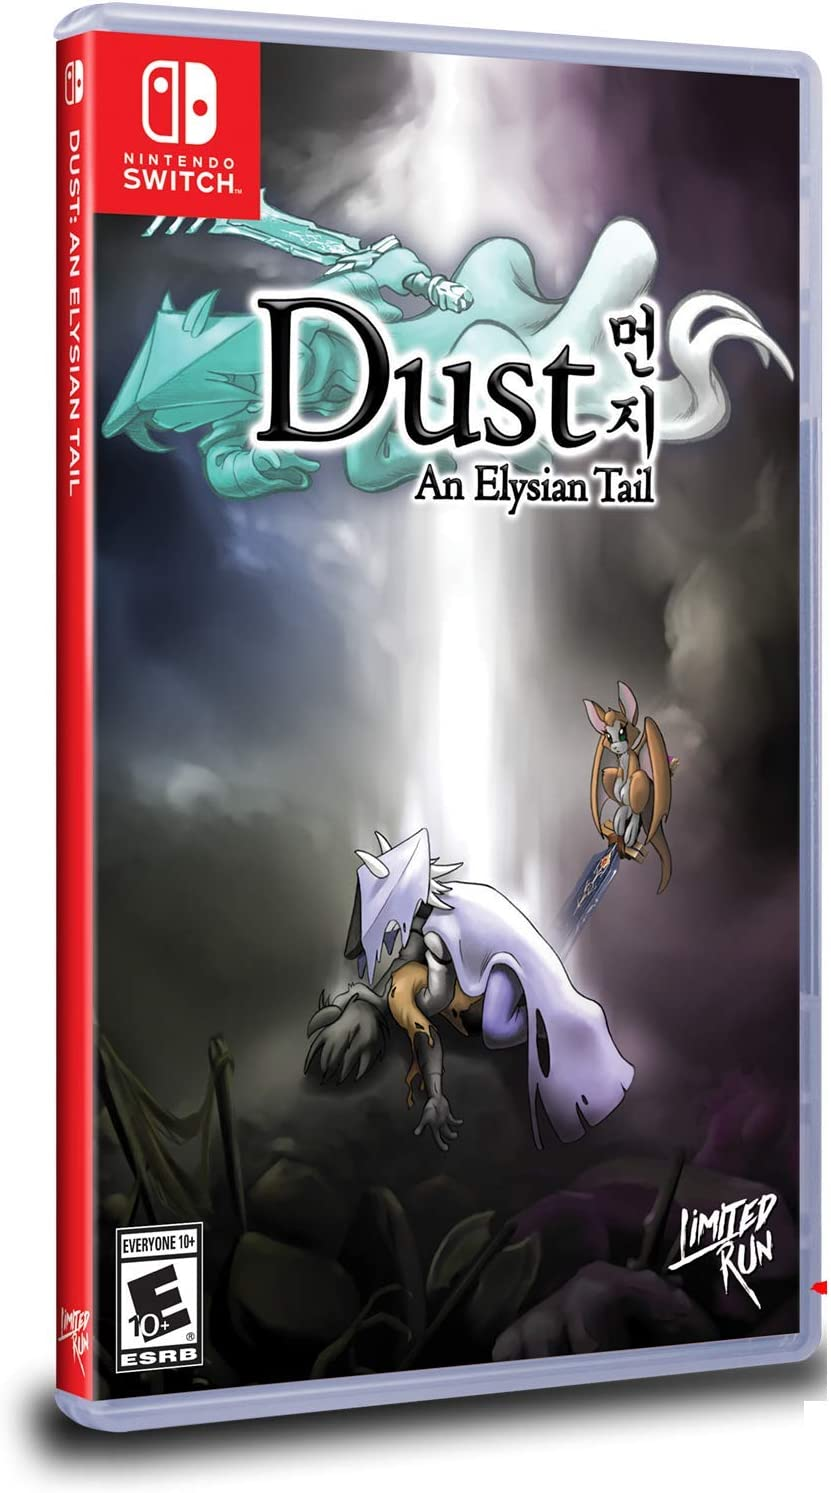 Amazon.com: Dust: An Elysian Tail (Switch Limited Run #12 ...